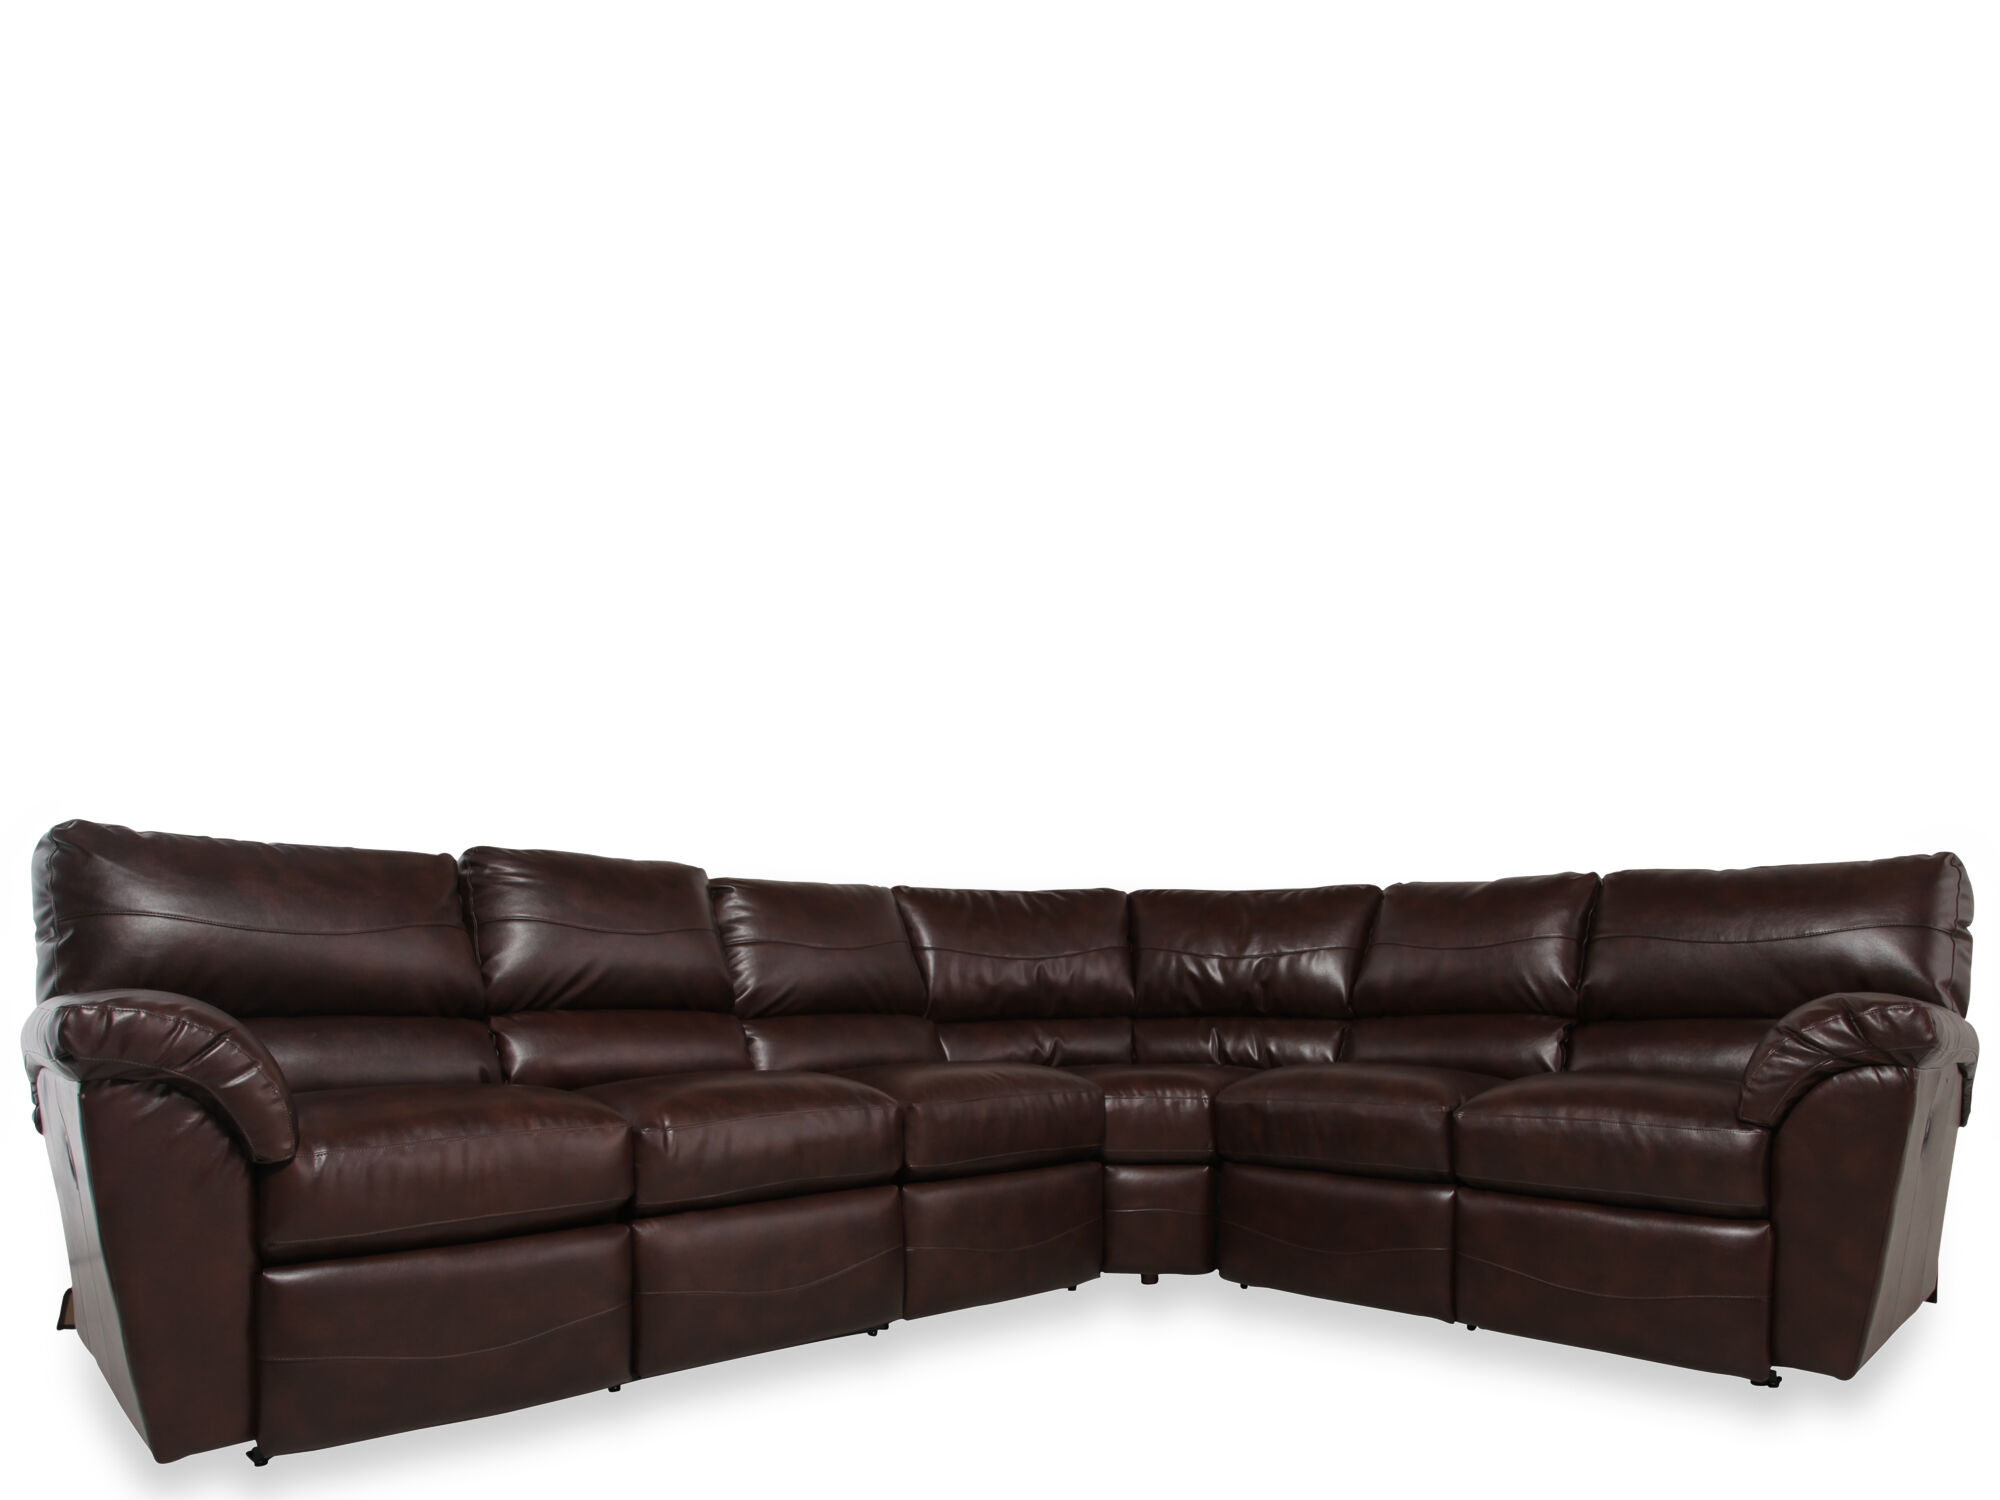 La-Z-Boy Reese Three-Piece Dual Recliner Sectional  sc 1 st  Mathis Brothers : reese sectional lazy boy - Sectionals, Sofas & Couches